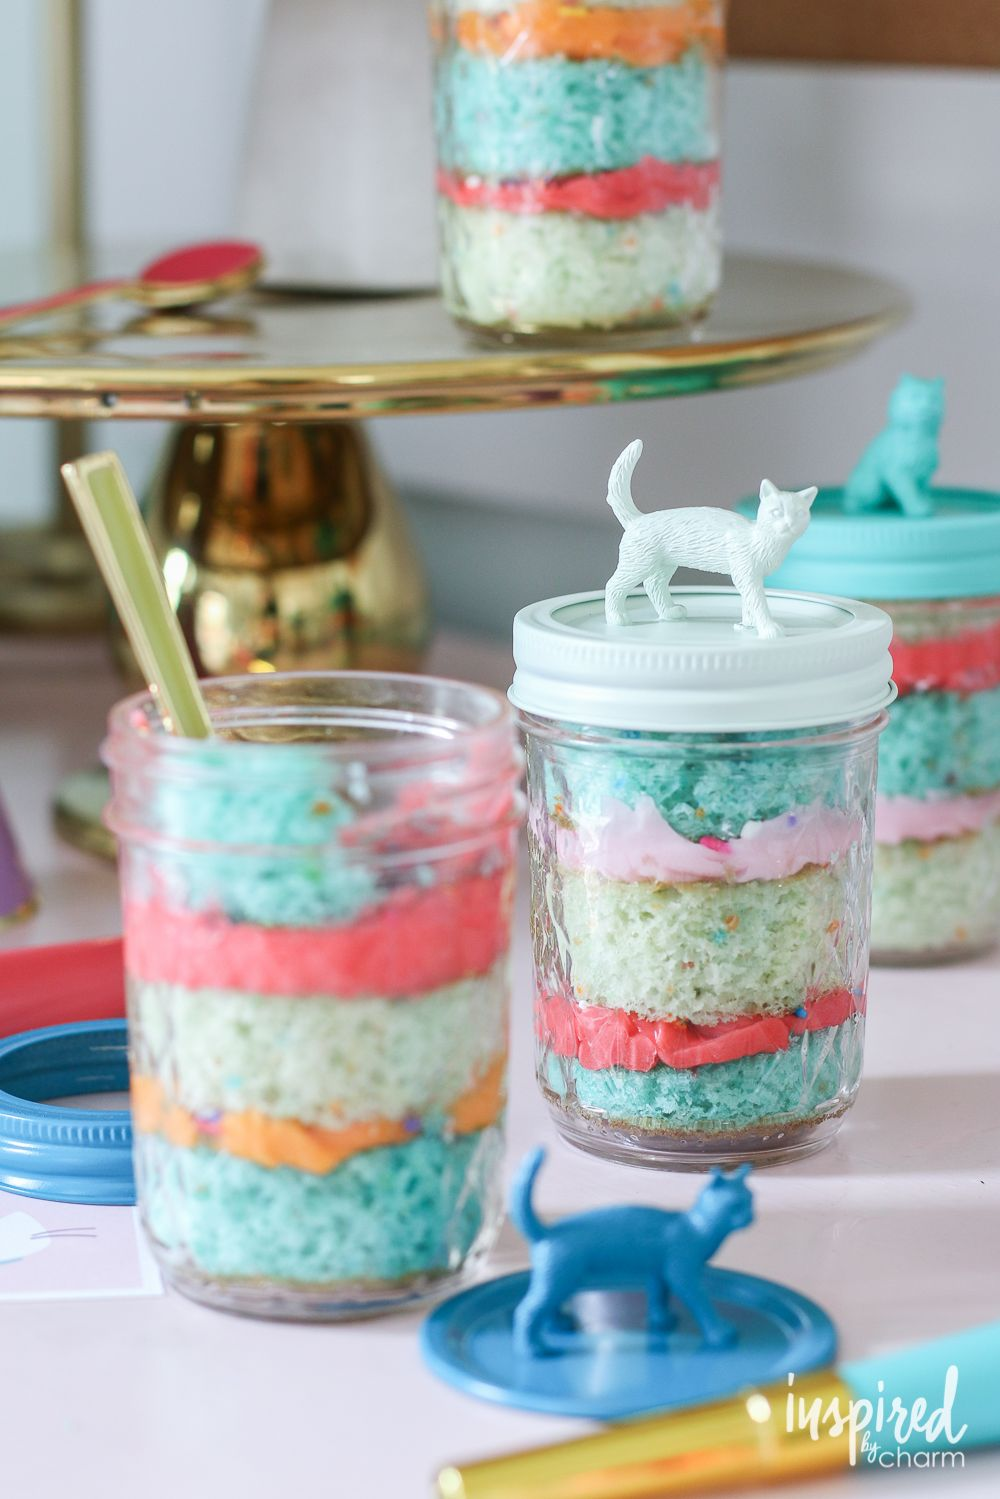 Mason Jar Cakes Come As You Are-ty | inspiredbycharm.com